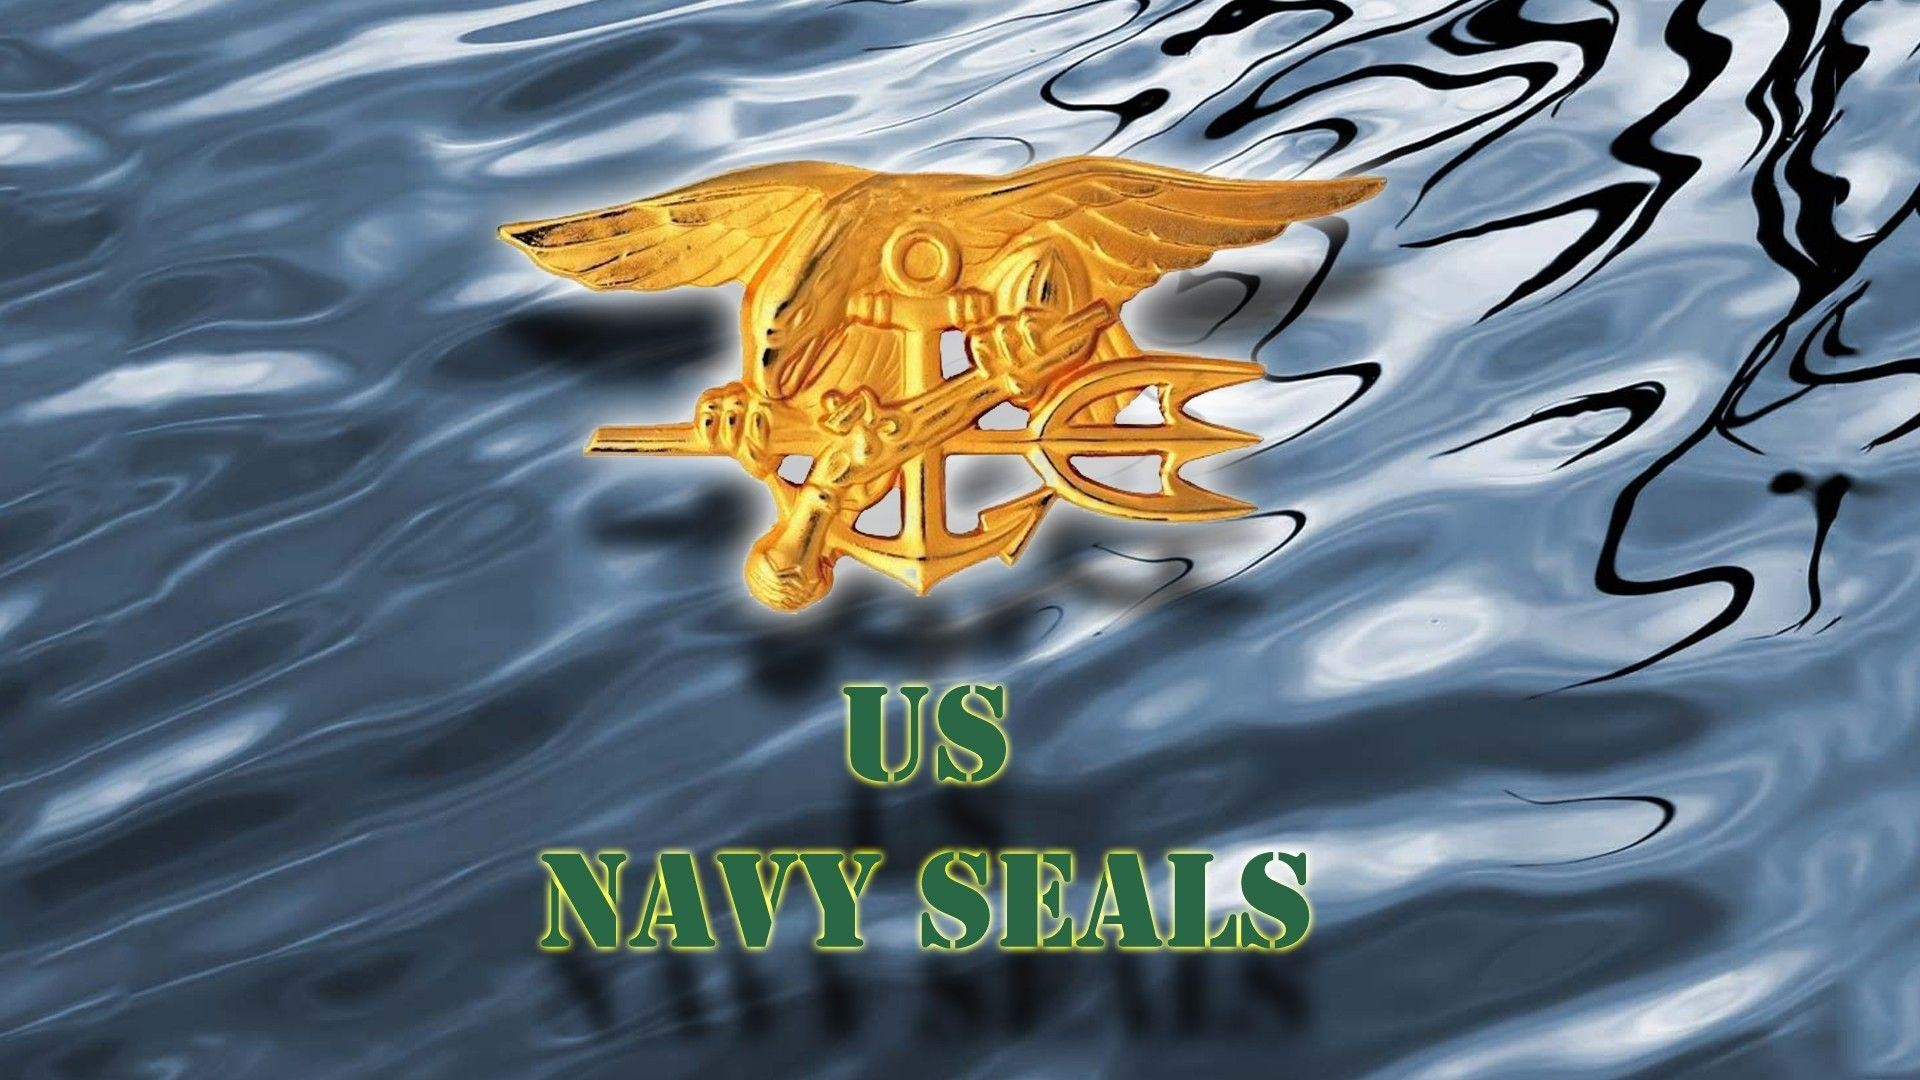 navy seal trident wallpaper 56 images